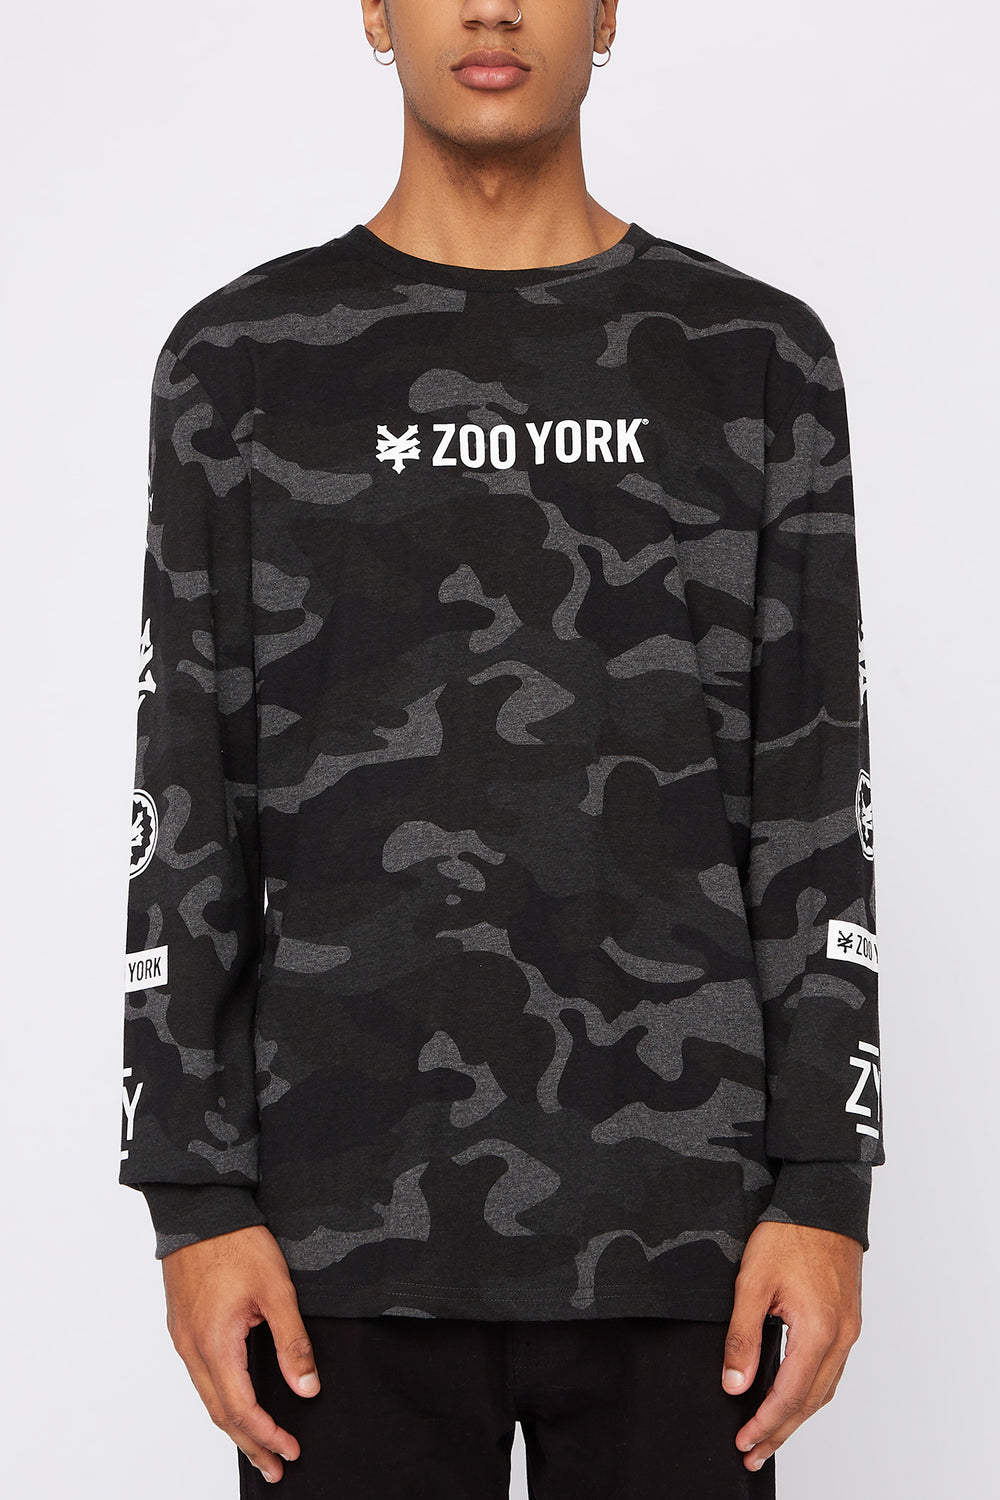 Zoo York Mens Camo Long Sleeve Shirt Black with White